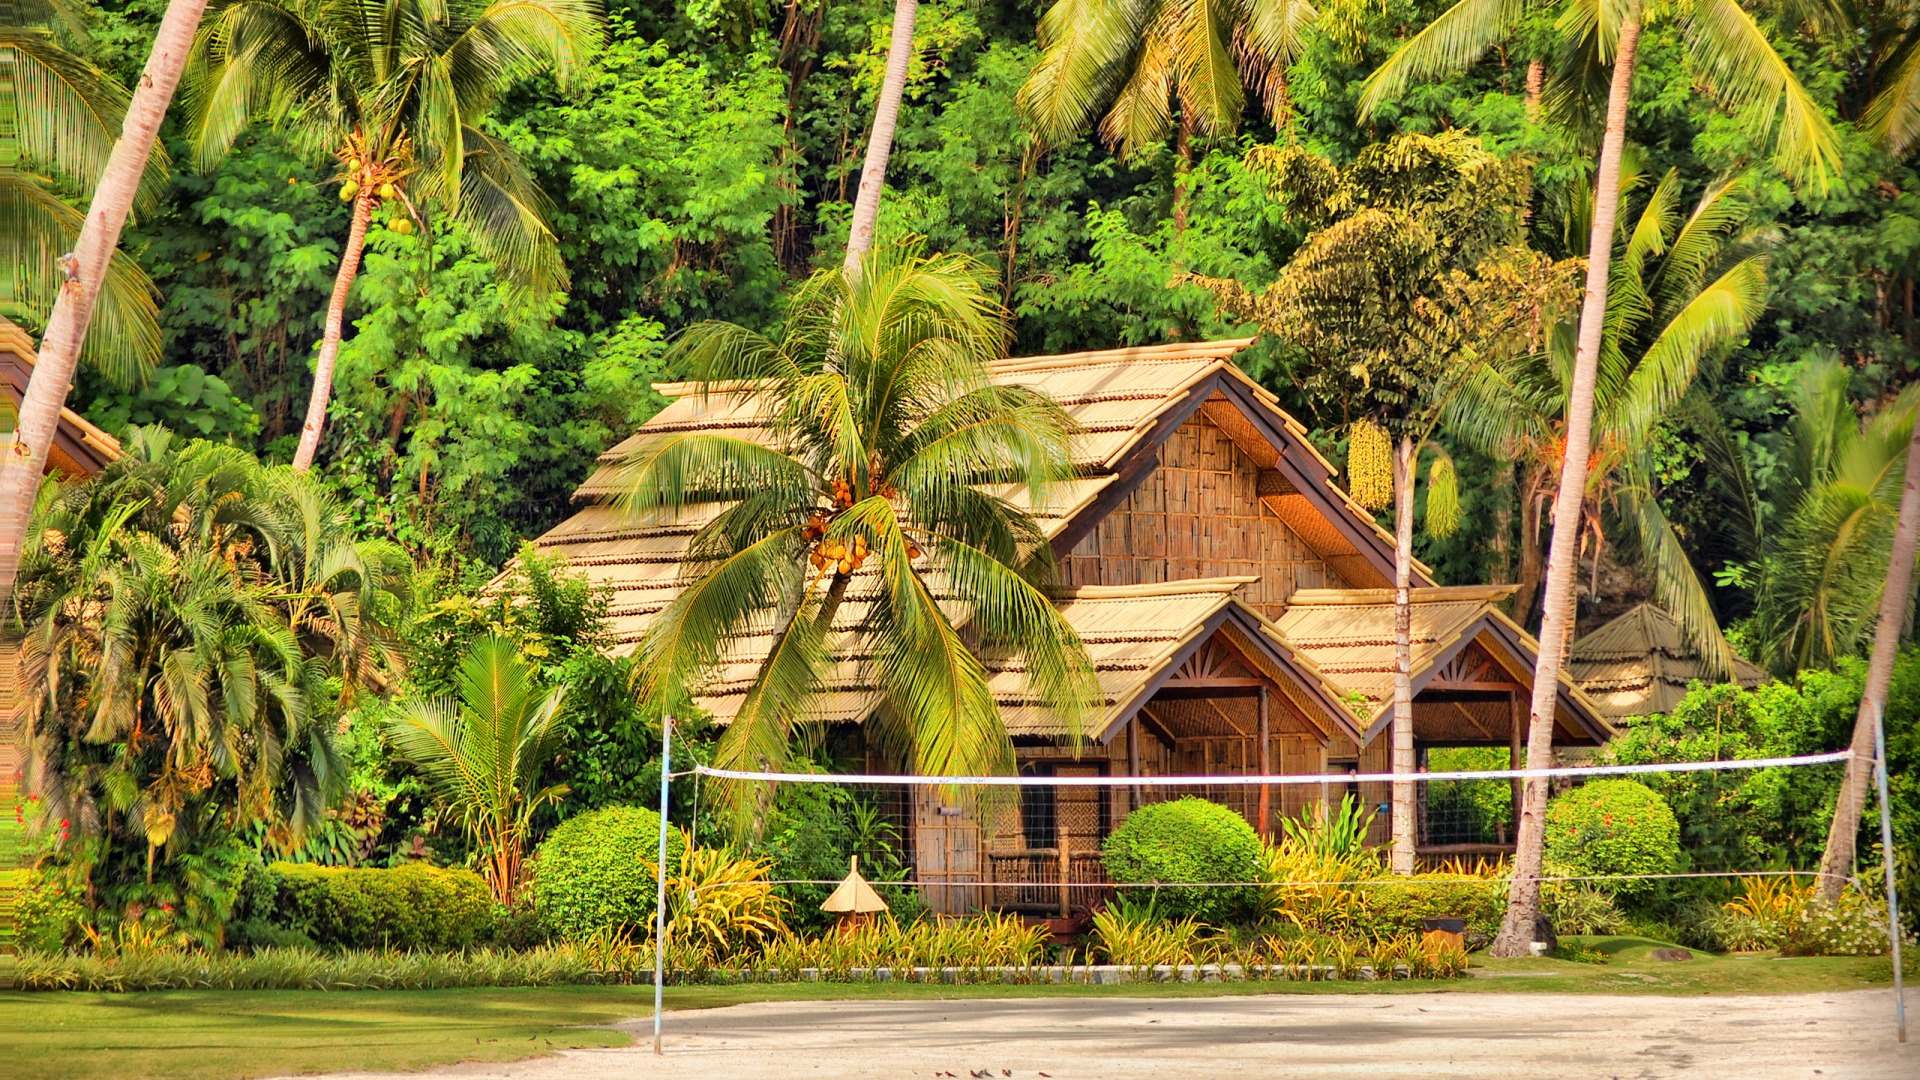 Download-house-palm-trees-island-hut-Bungalow-Philippines-Samal-section-Res-wallpaper-wpc5804372